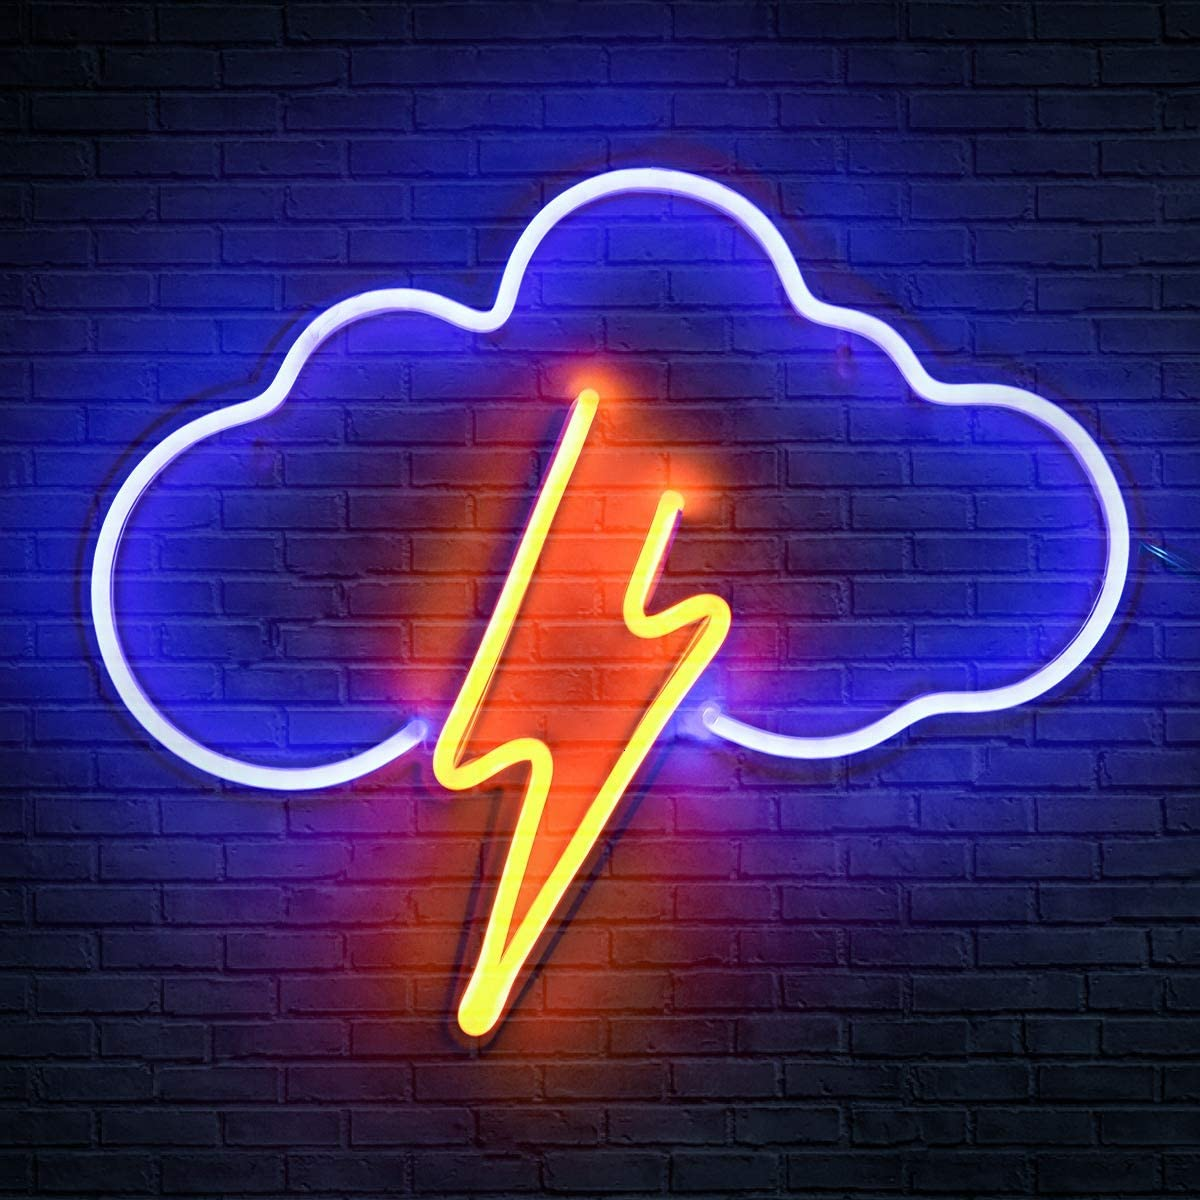 Koicaxy Neon Sign, Cloud Led Neon Light Wall Light Led Wall Decor, Battery or USB Powered Light Up Acrylic Neon Sign for Bedroom, Kids Room, Living Room, Bar, Party, Christmas, Wedding